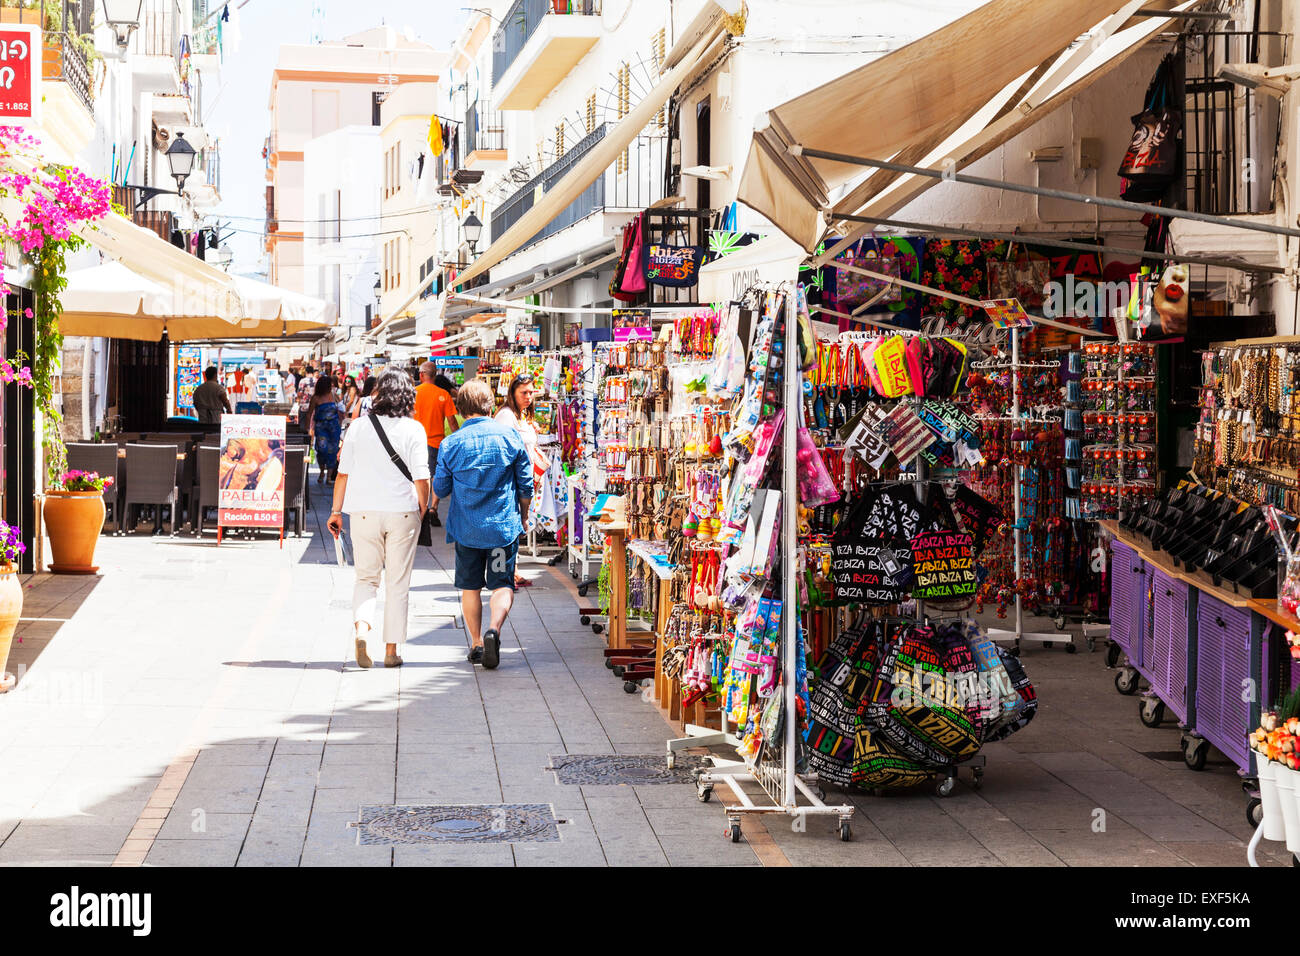 ibiza town shopping street stalls shops stores tourist tat for sale stock photo 85156270 alamy. Black Bedroom Furniture Sets. Home Design Ideas